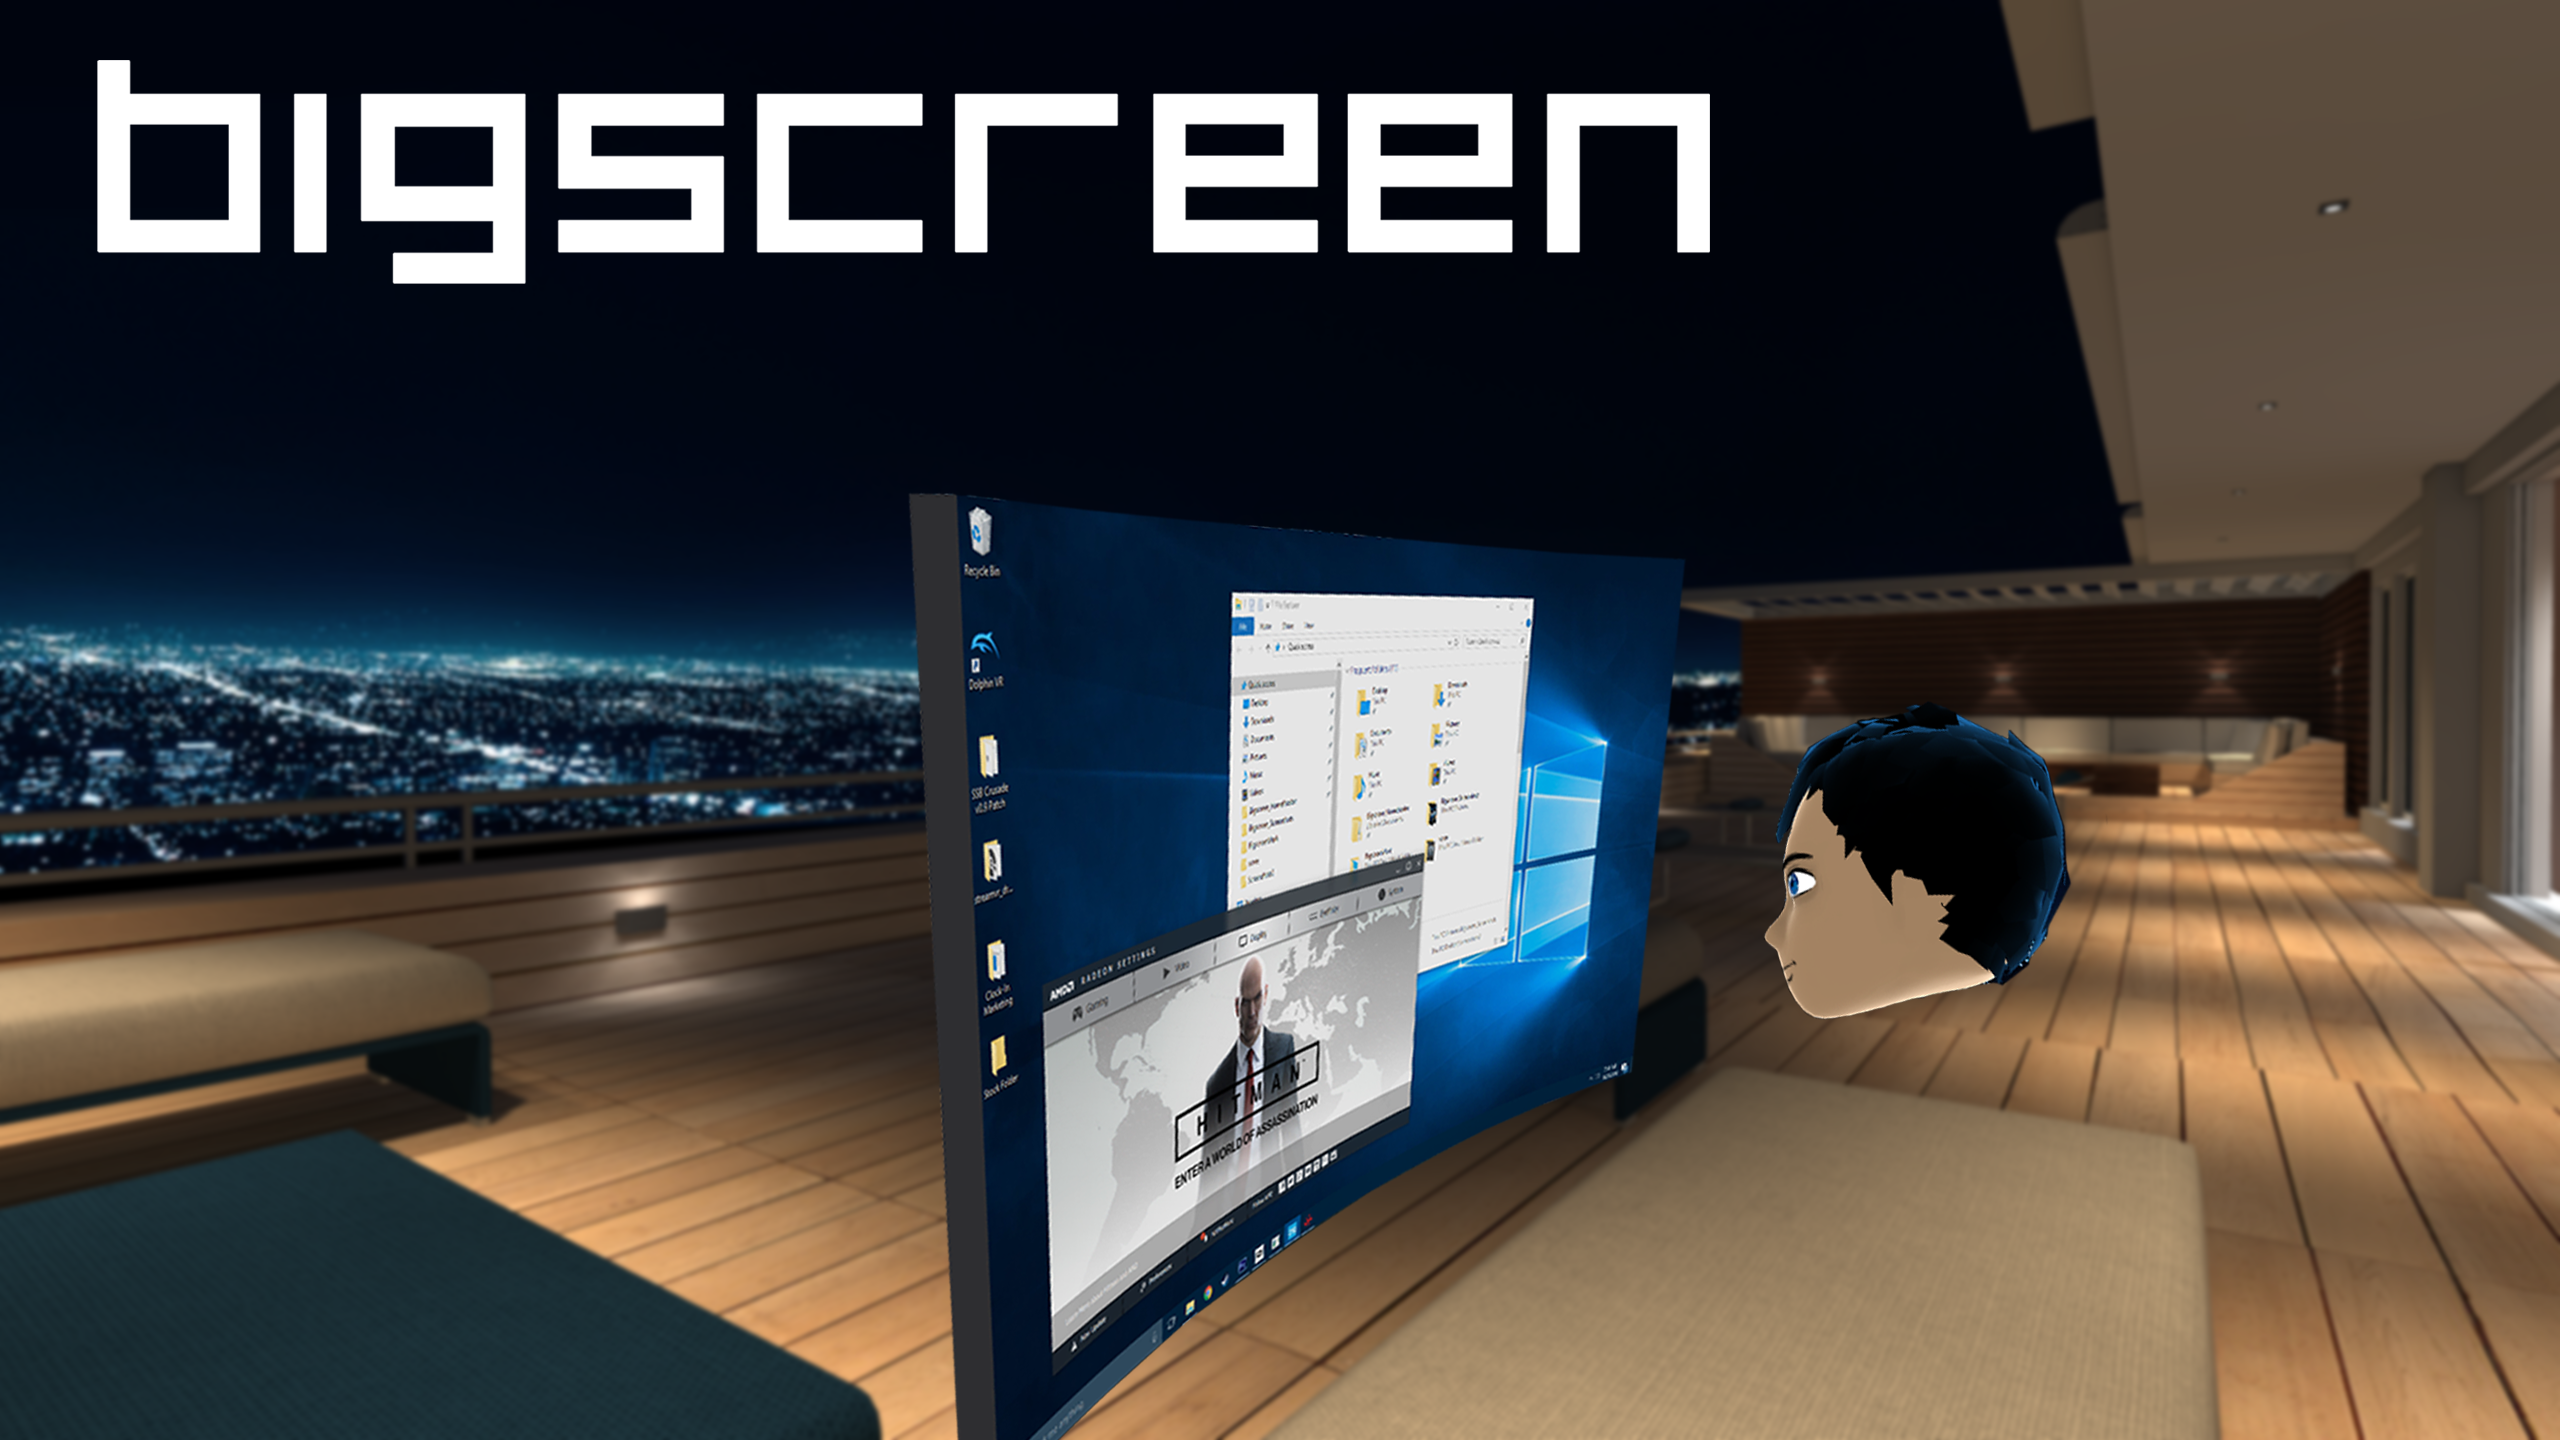 Amazon com: Bigscreen - SteamVR [Online Game Code]: Video Games